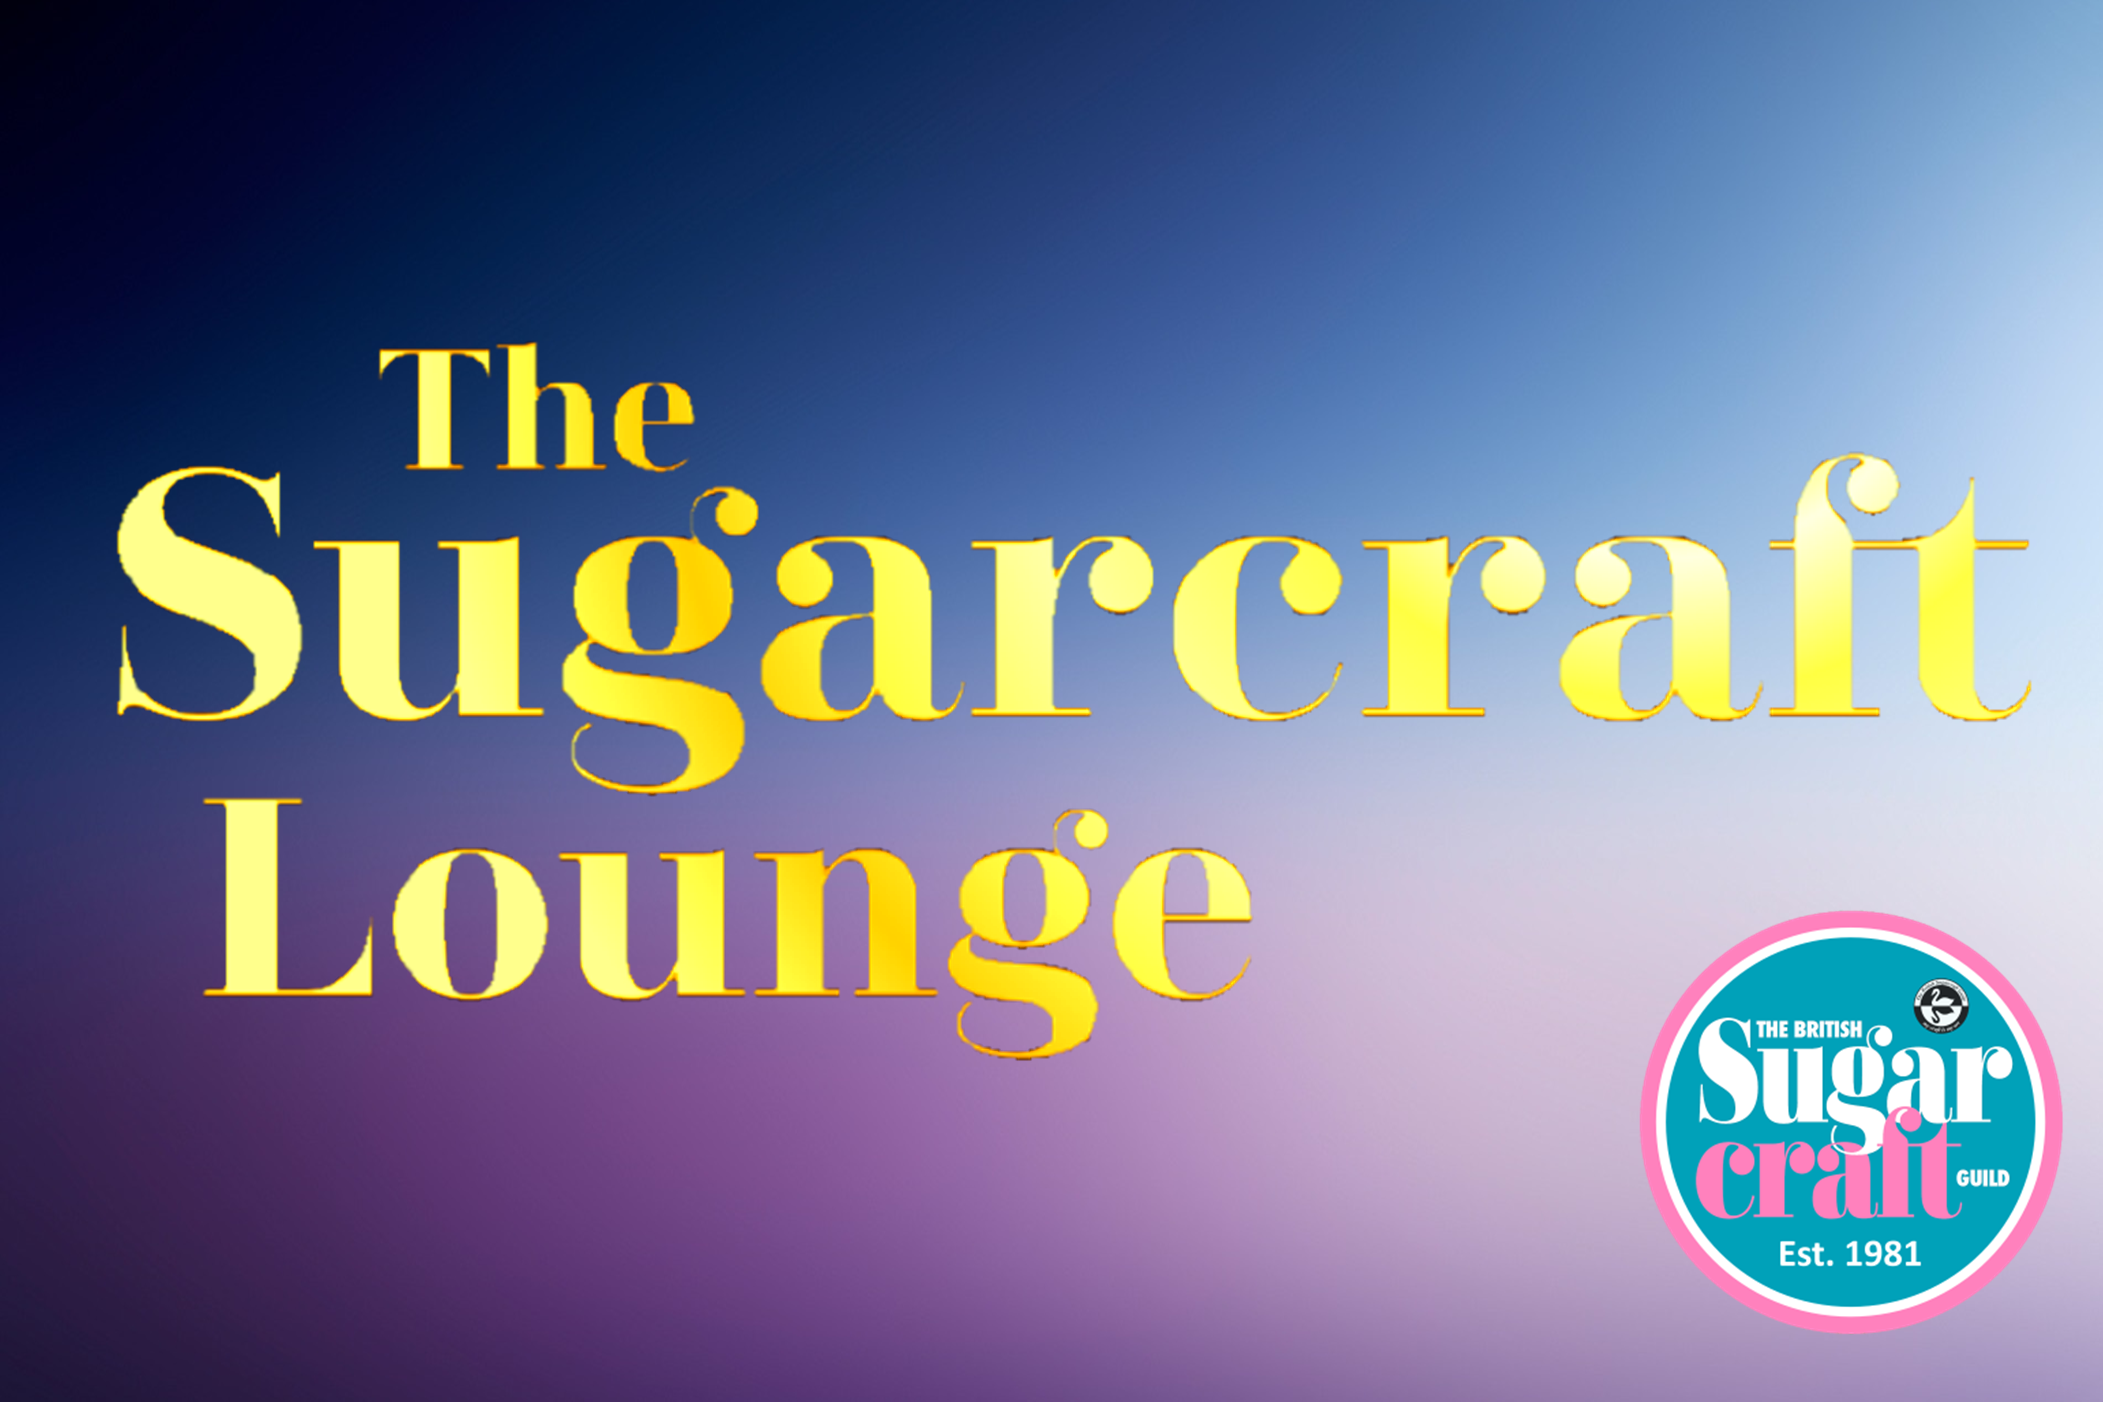 SUGARCRAFT LOUNGE